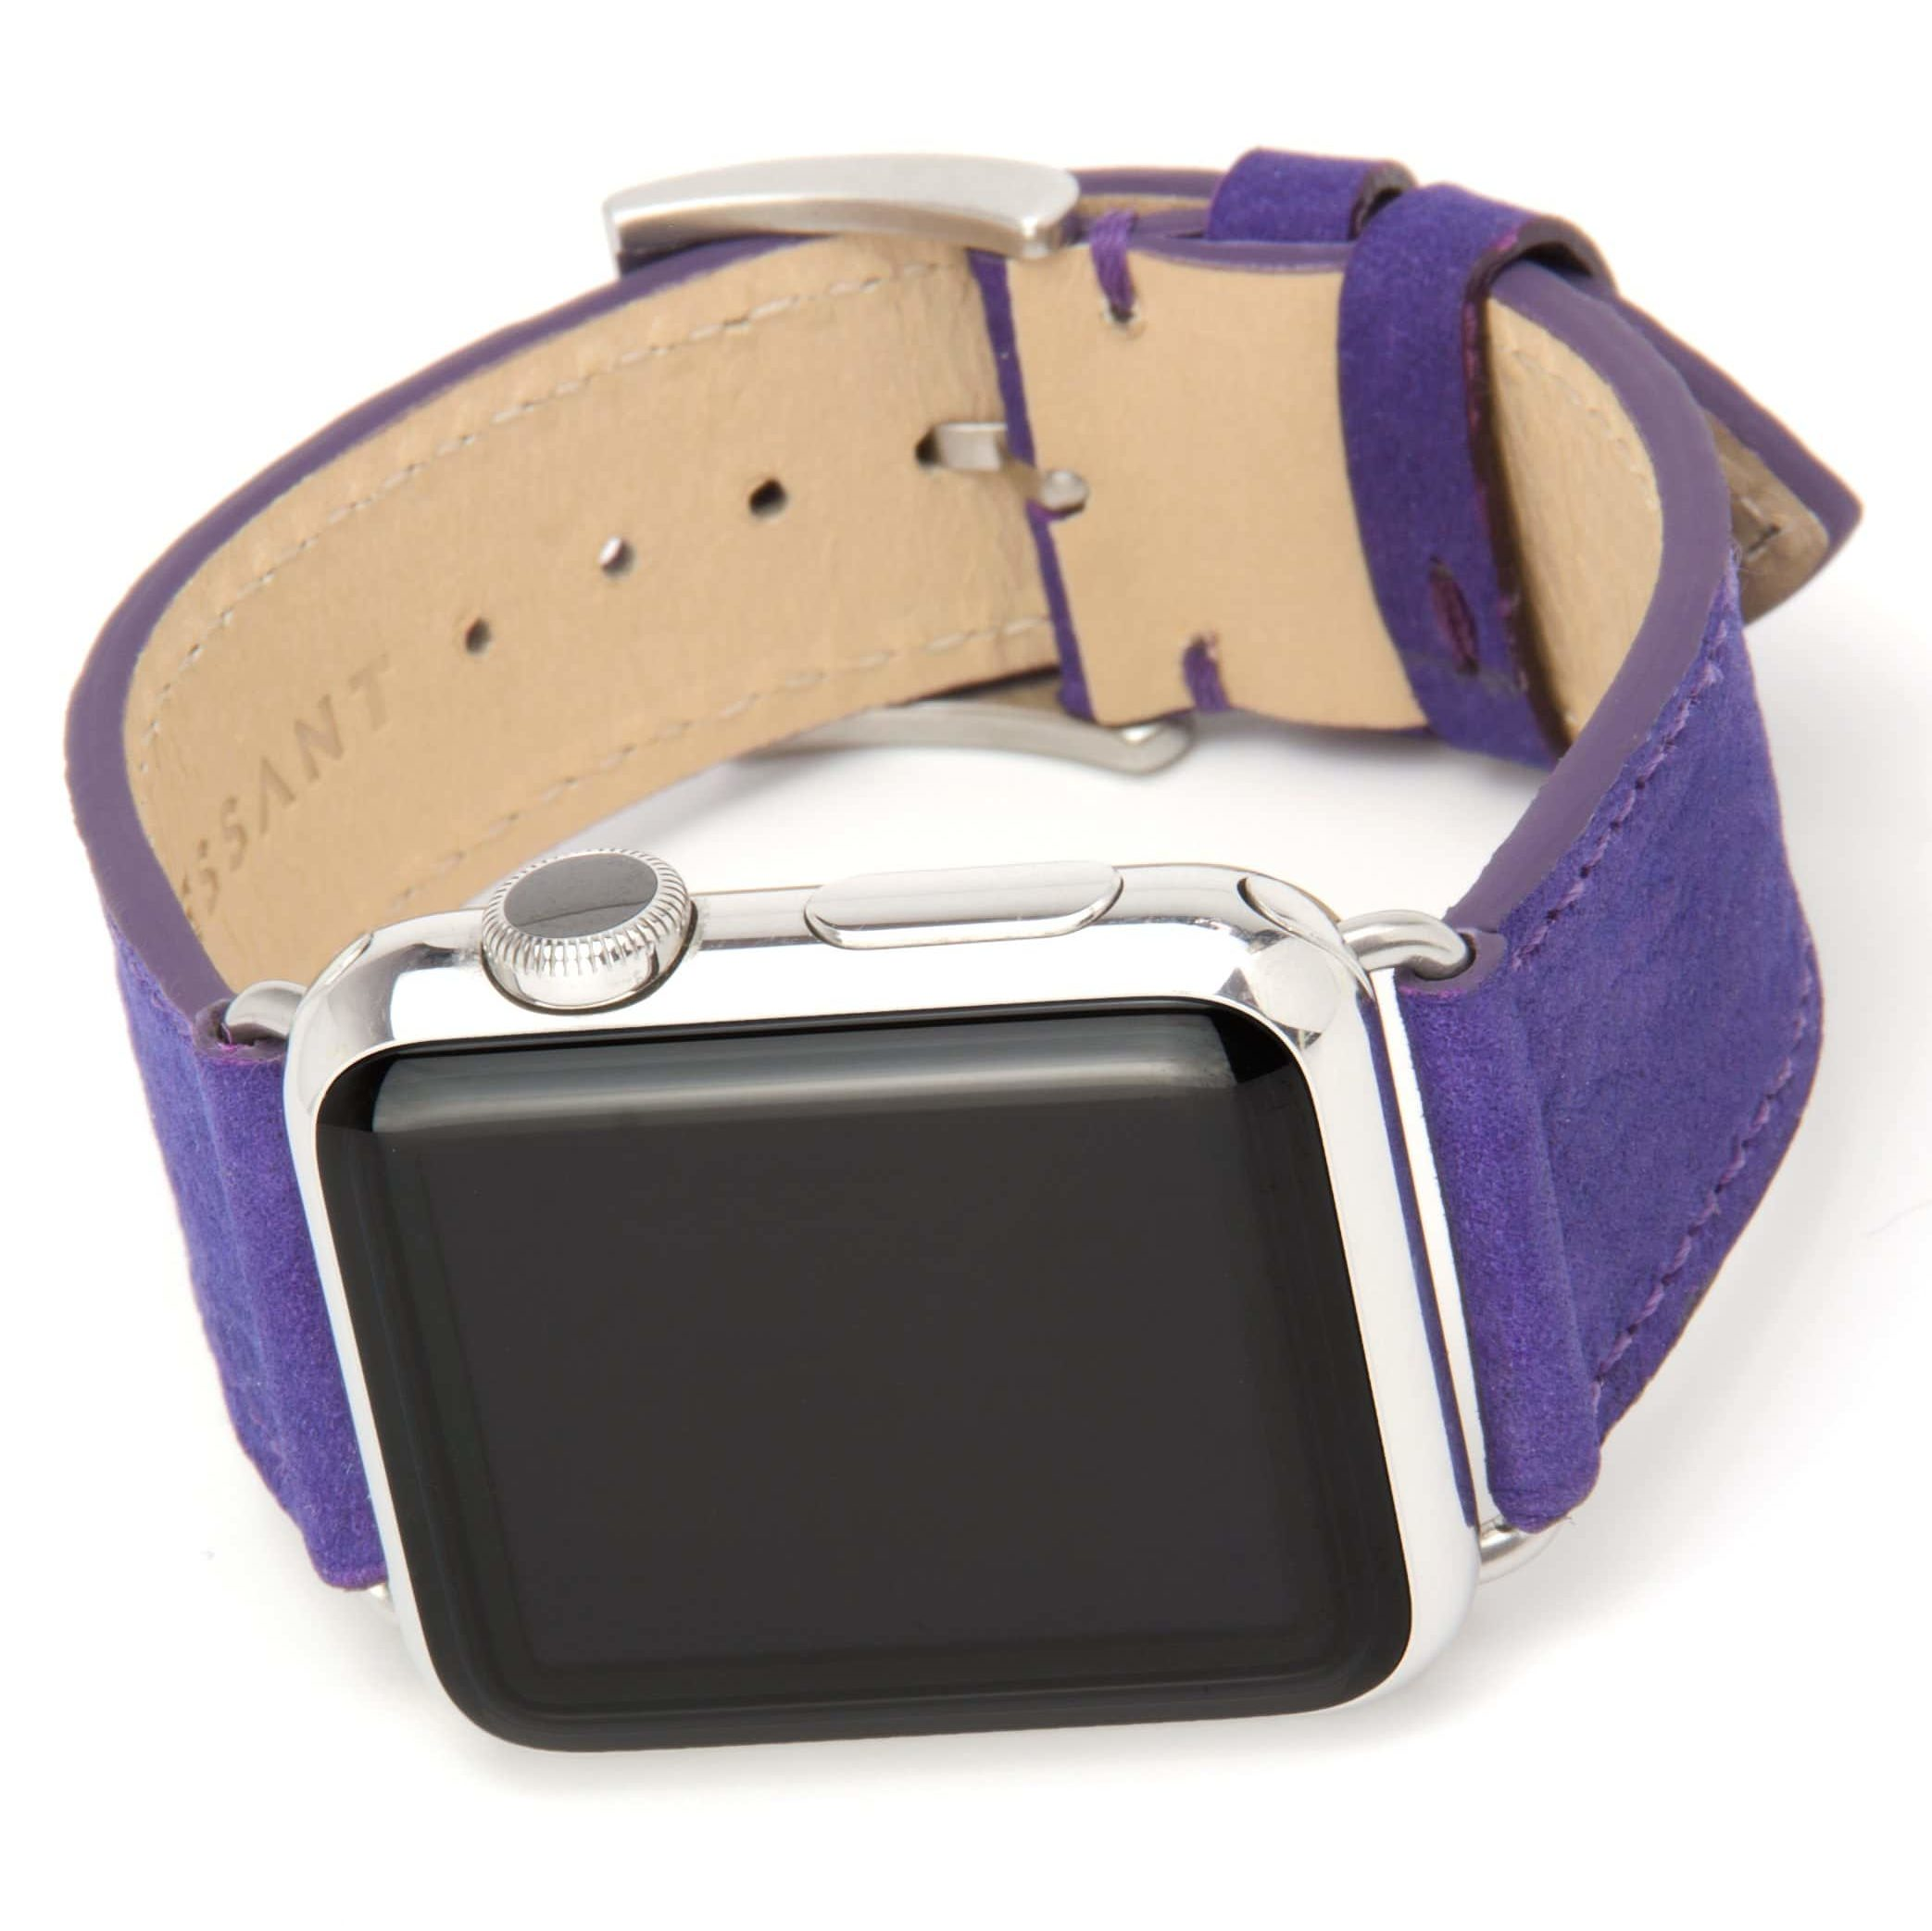 Clessant Nubuck Apple Watch bands come in purple (as well as other slightly more restrained colors).